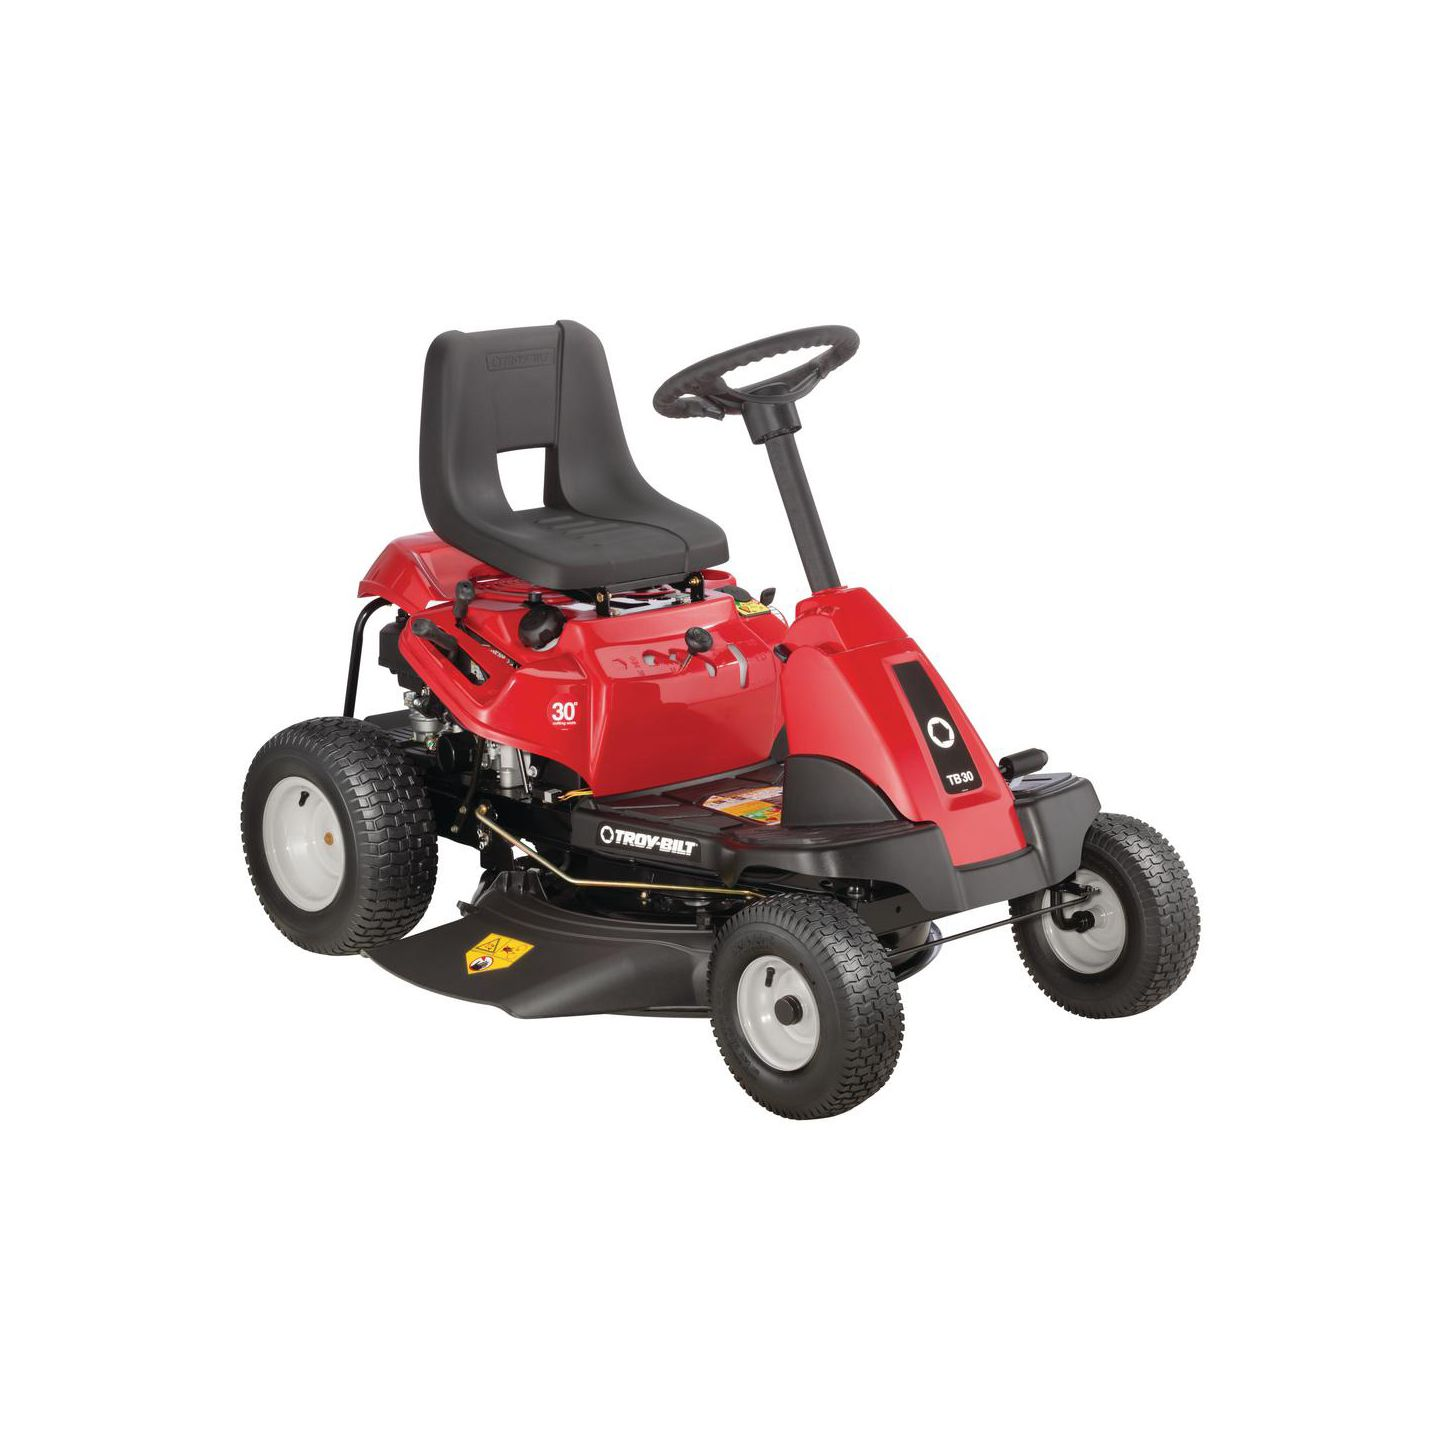 Riding Mower Mtd Diagram Riding Mower For Sale